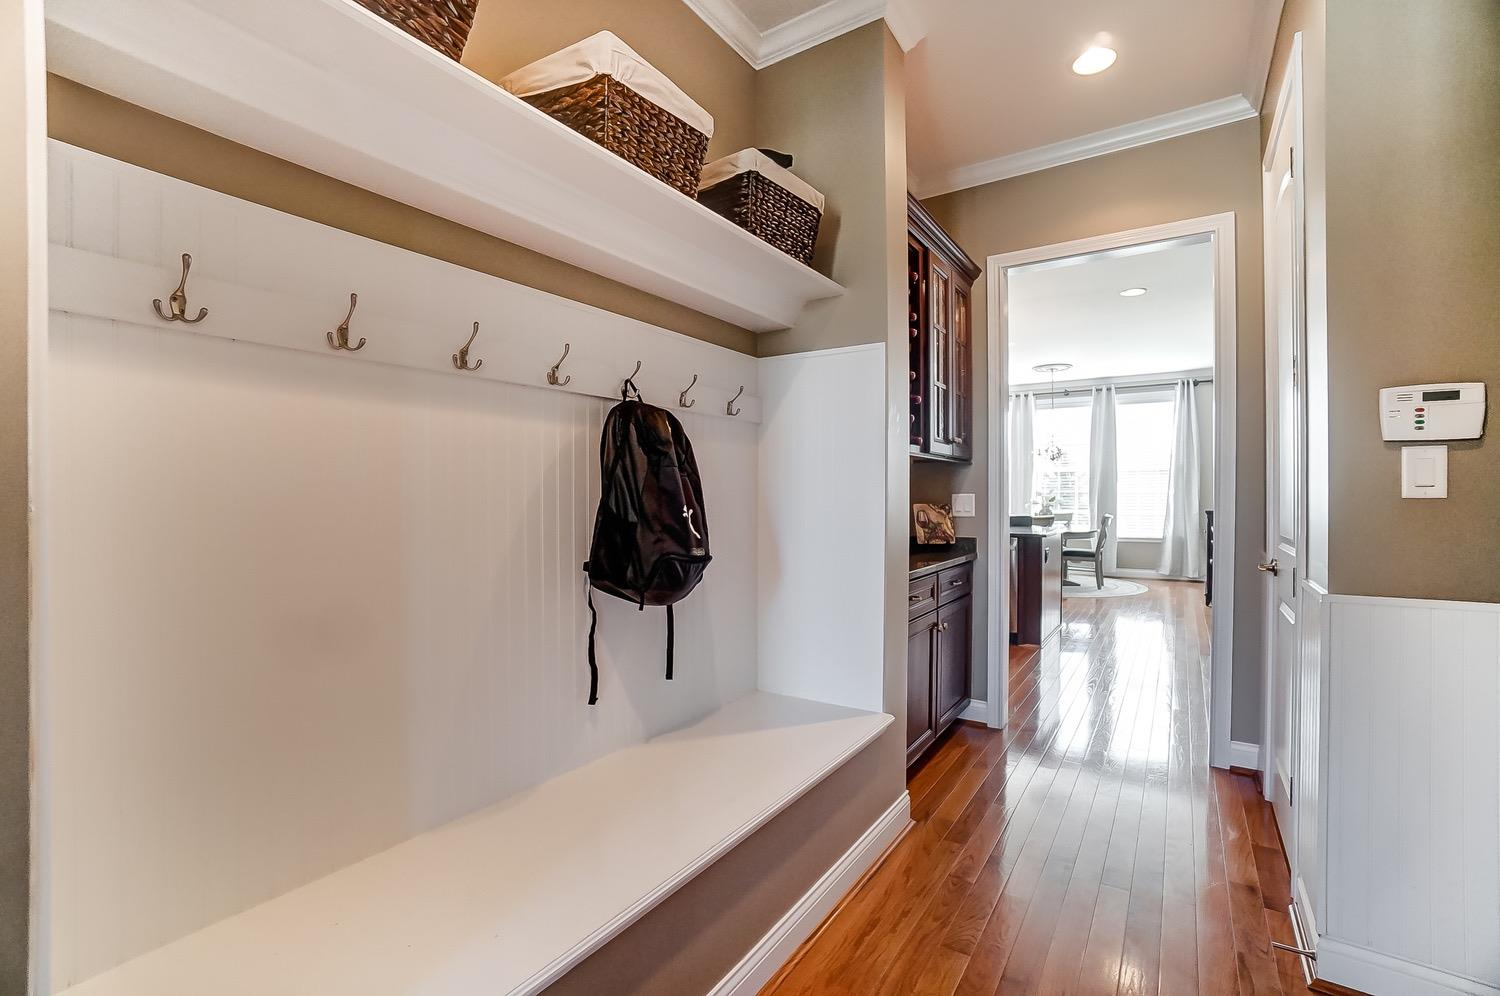 Nice cubby area as you walk in from garage - perfect landing spot for backpacks and coats!